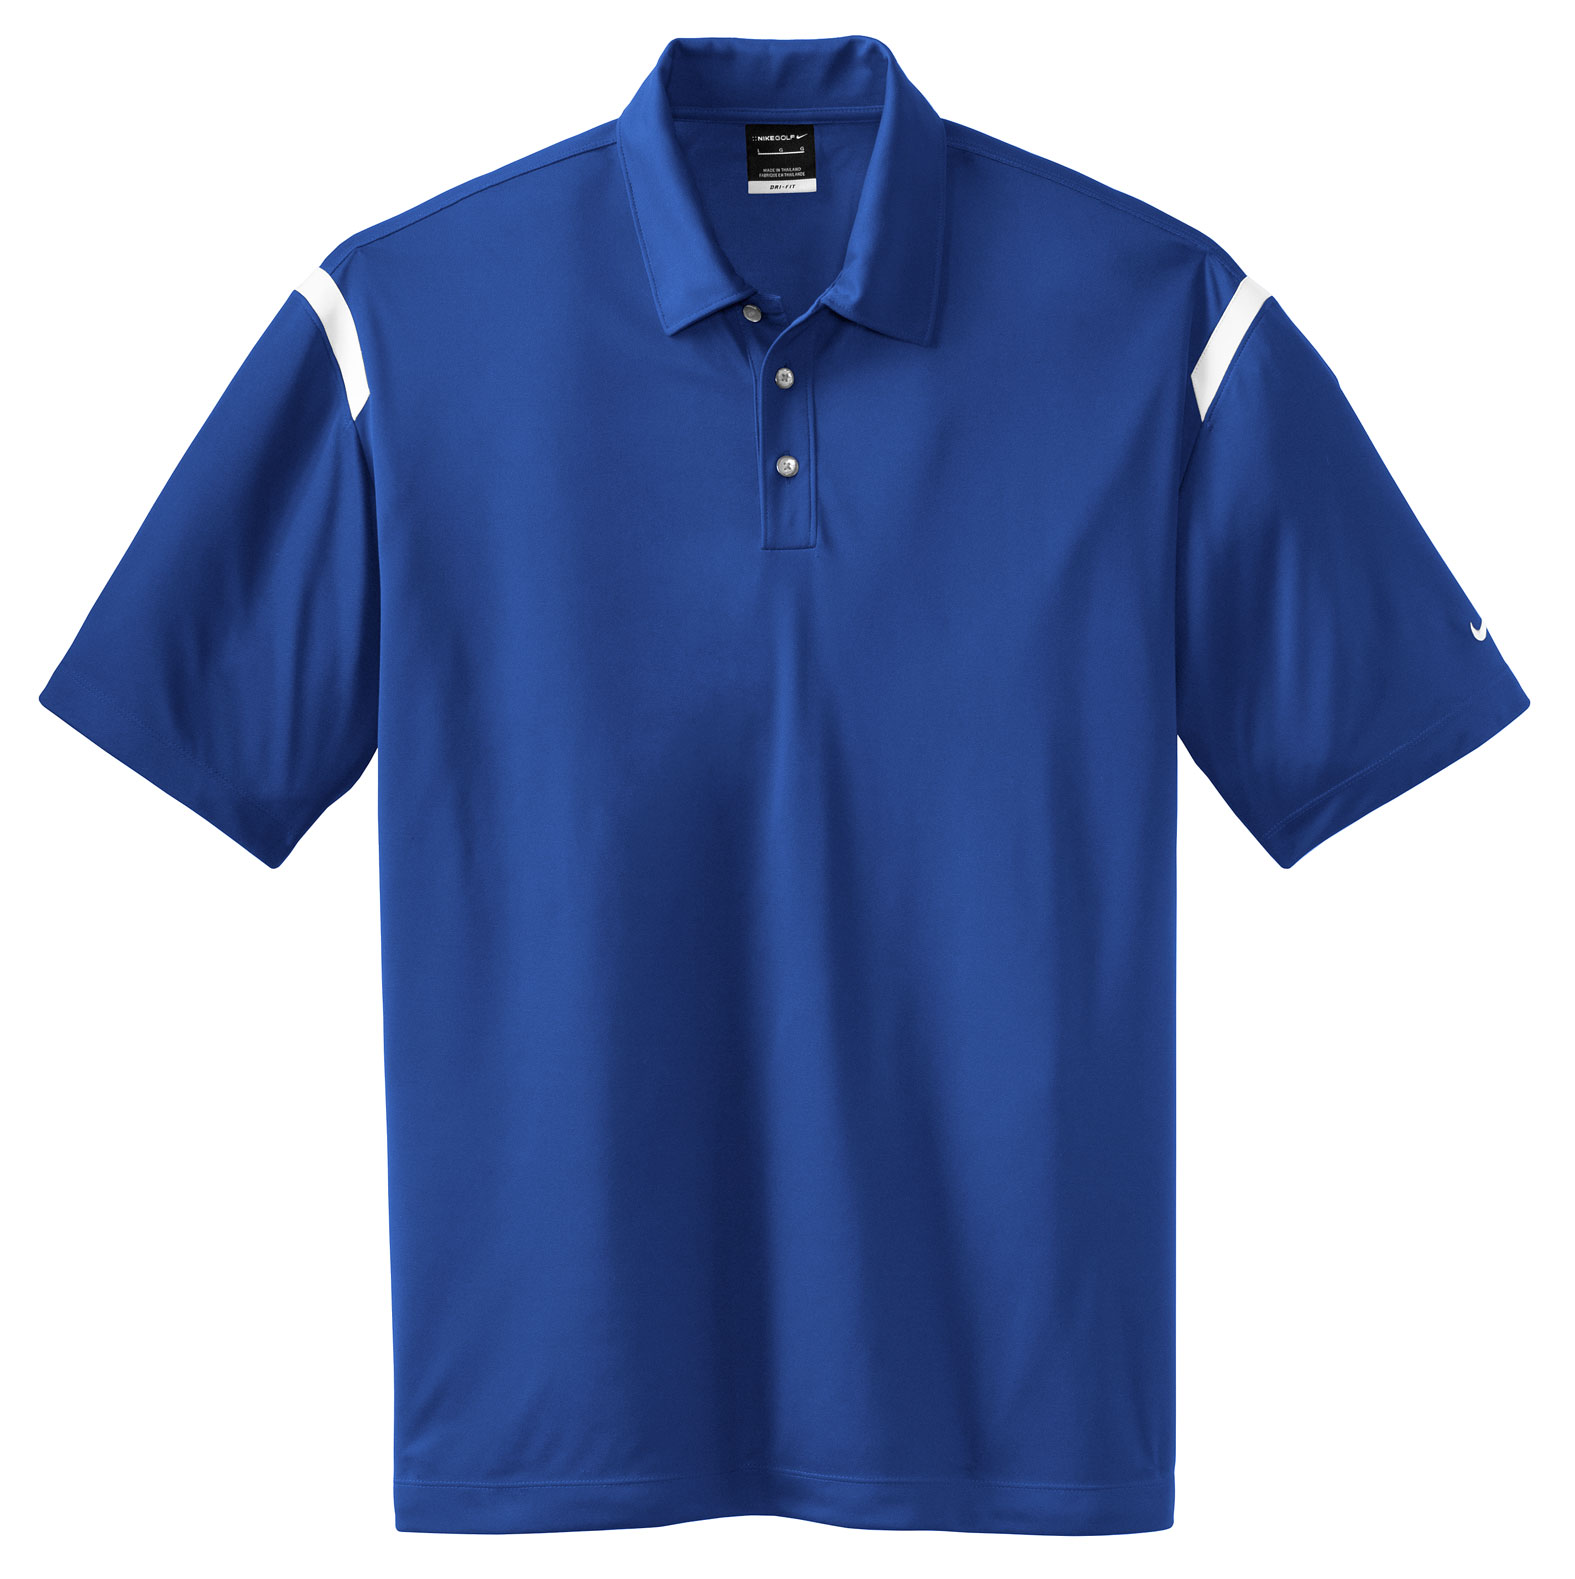 NIKE Golf Mens Dri-FIT Shoulder Stripe Sport Shirt